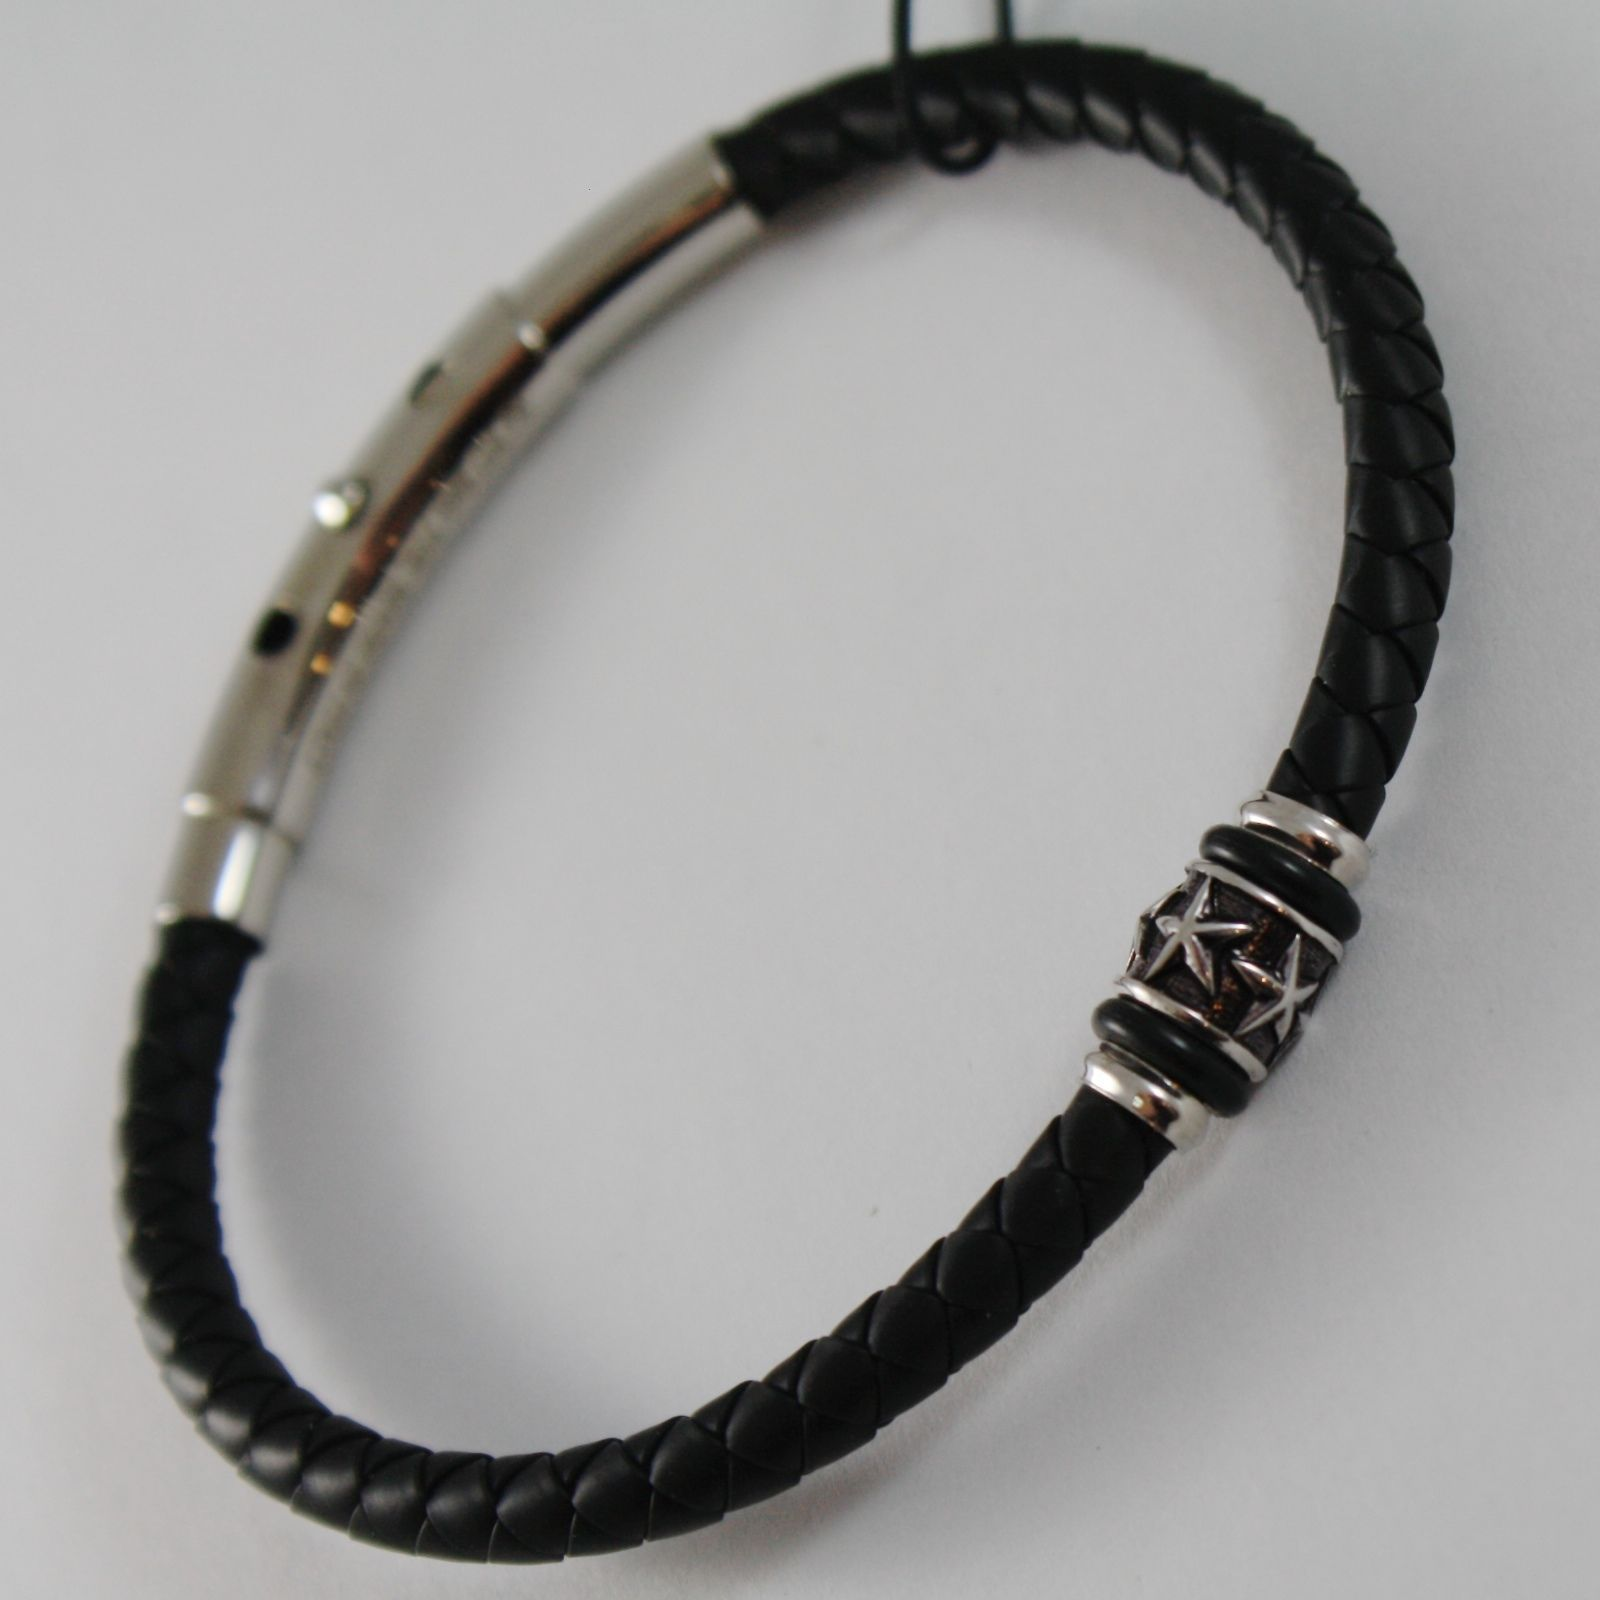 925 SILVER ZANCAN BRACELET BLACK WOVEN LEATHER, STARS CYLINDER, MADE IN ITALY